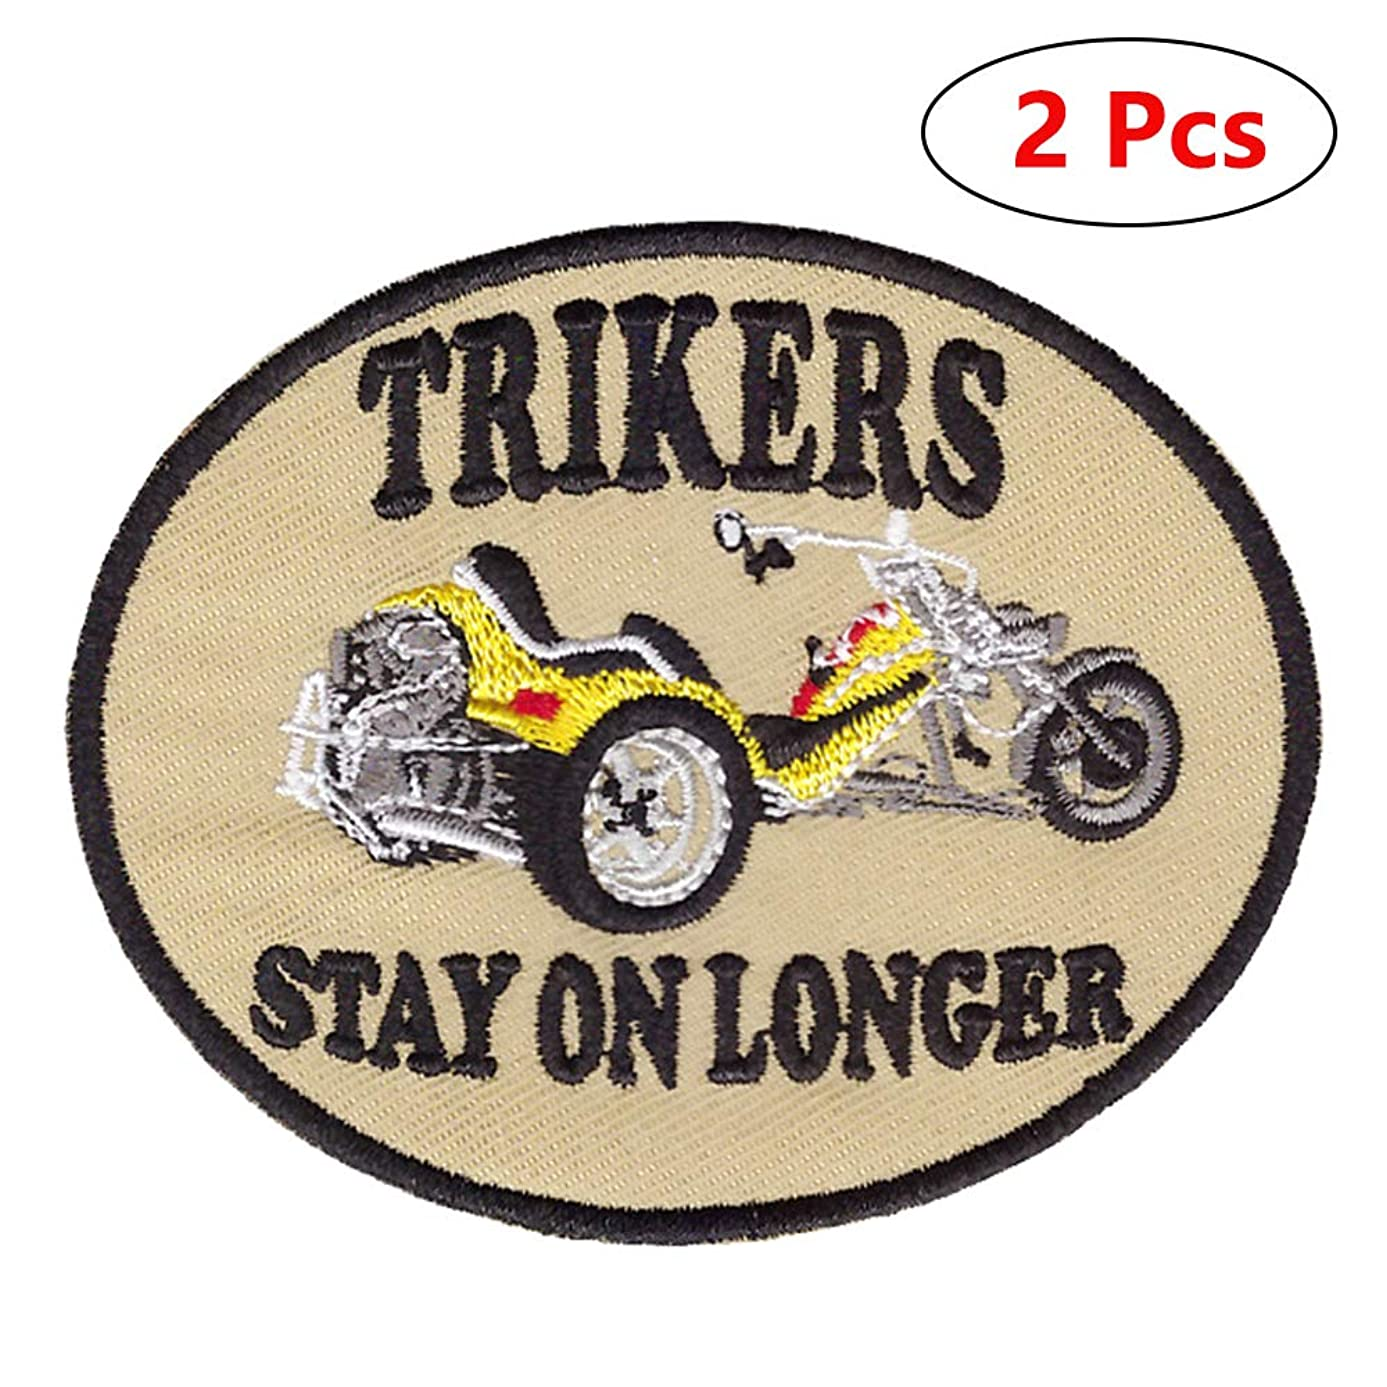 Retro Car Patches Funny Punk Rock Badge Art Embroidered Applique Iron on or Sew on Patches for Jackets Backpacks Clothes Hat (2Pcs)